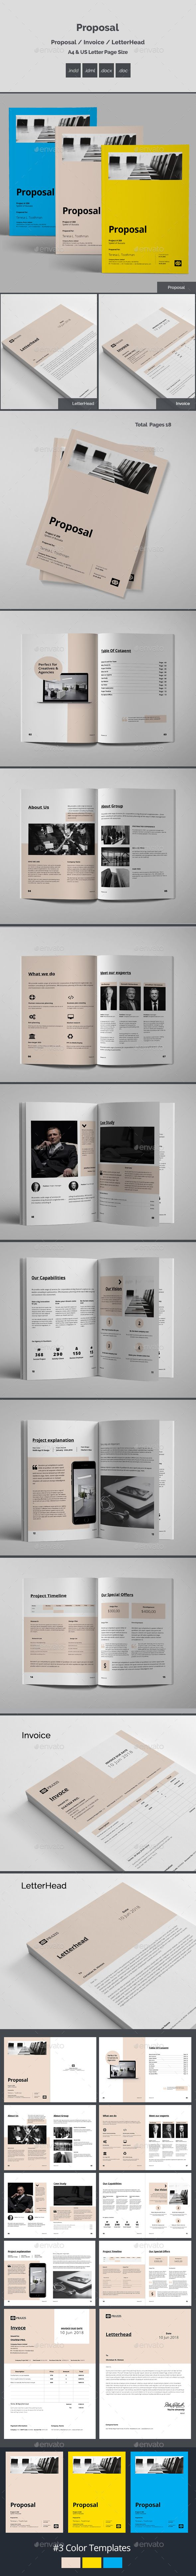 Proposal Brochure Template InDesign INDD - 18 Pages, A4 & Letter Page Size